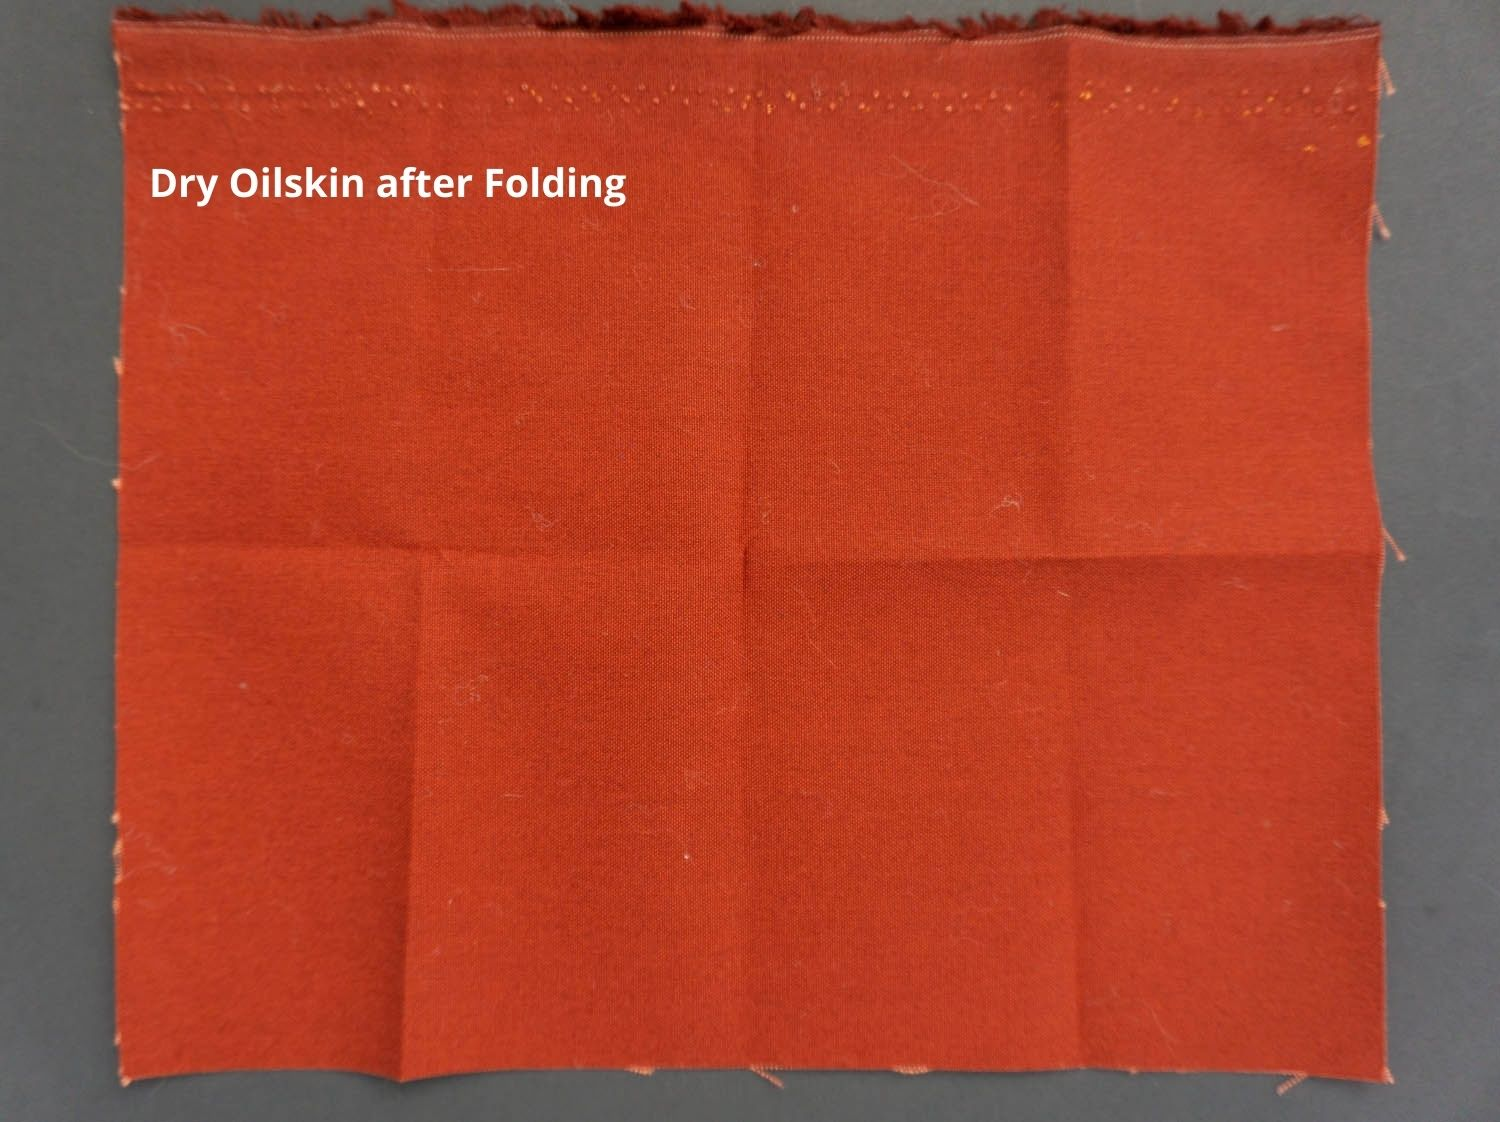 a picture of red oilskin that has been folded and then opened and laid flat on a black background